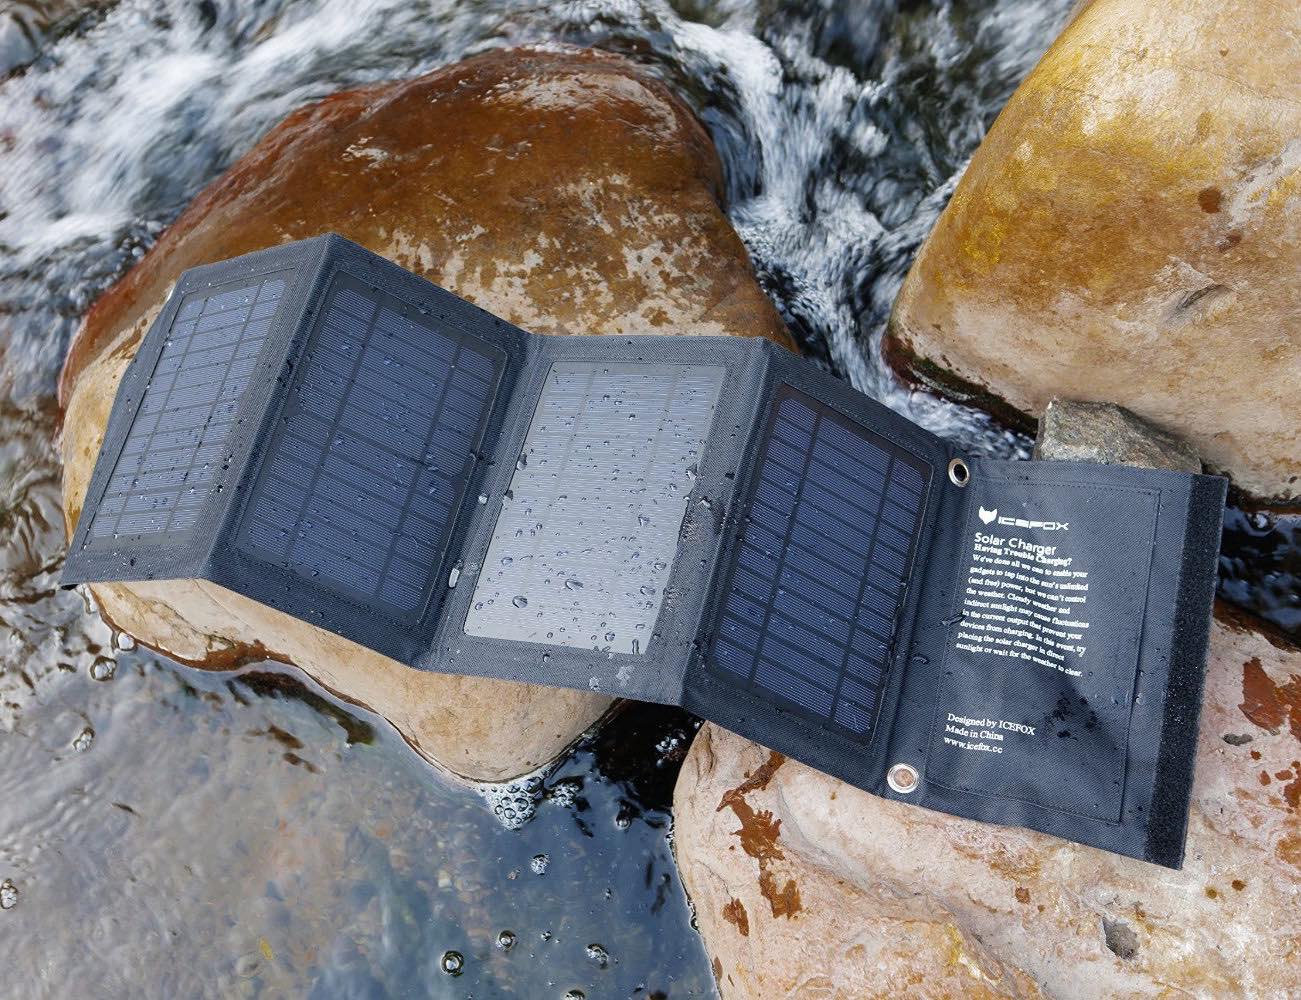 Solar Phone Charger by icefox – Compact Design That is Highly Portable